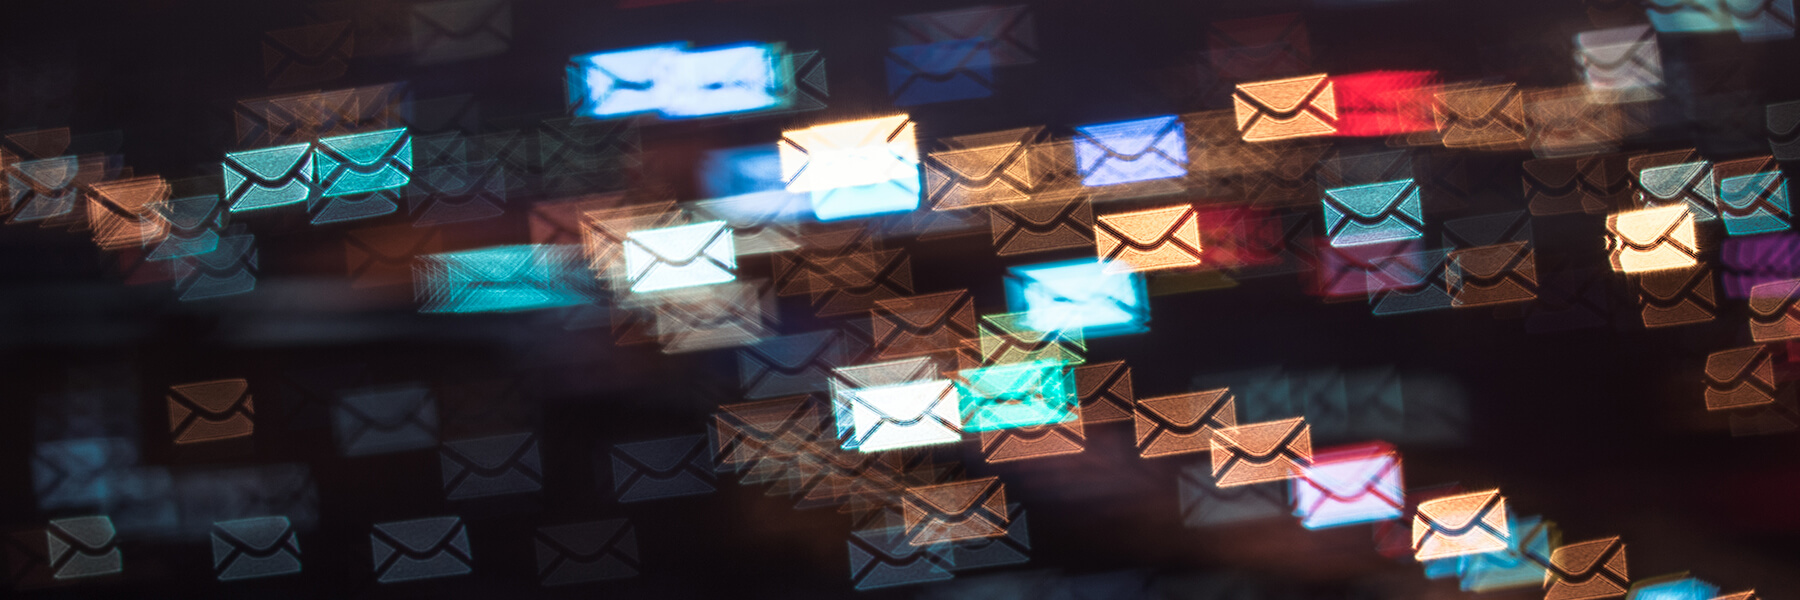 Abstract concept of colorful email icons rushing in the dark to reach their destination inbox